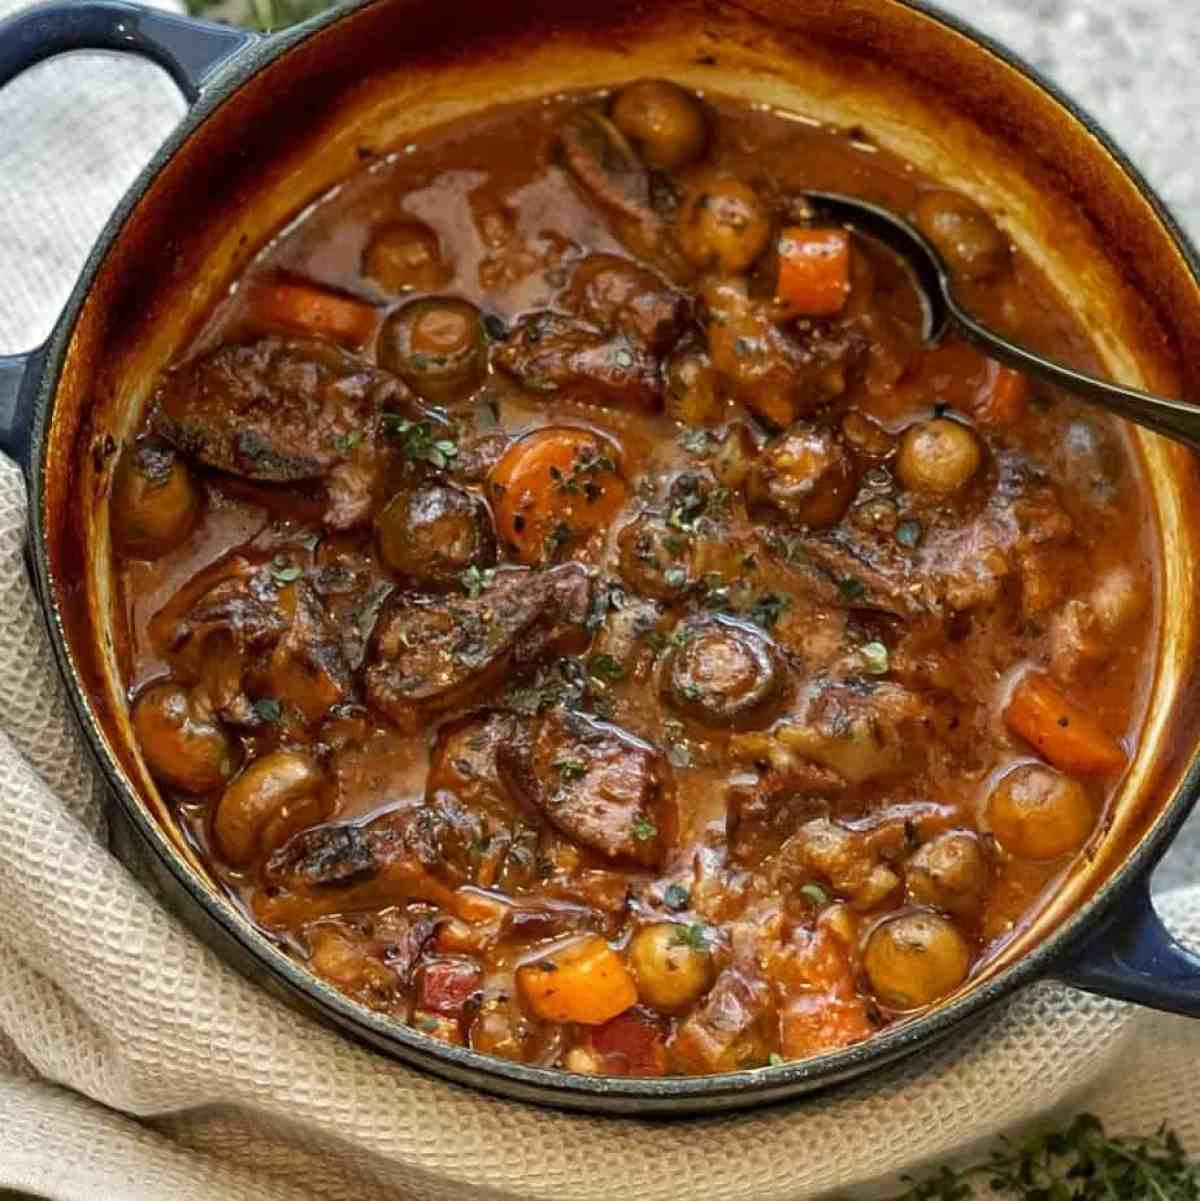 beef stew with mushrooms and carrot in blue pot